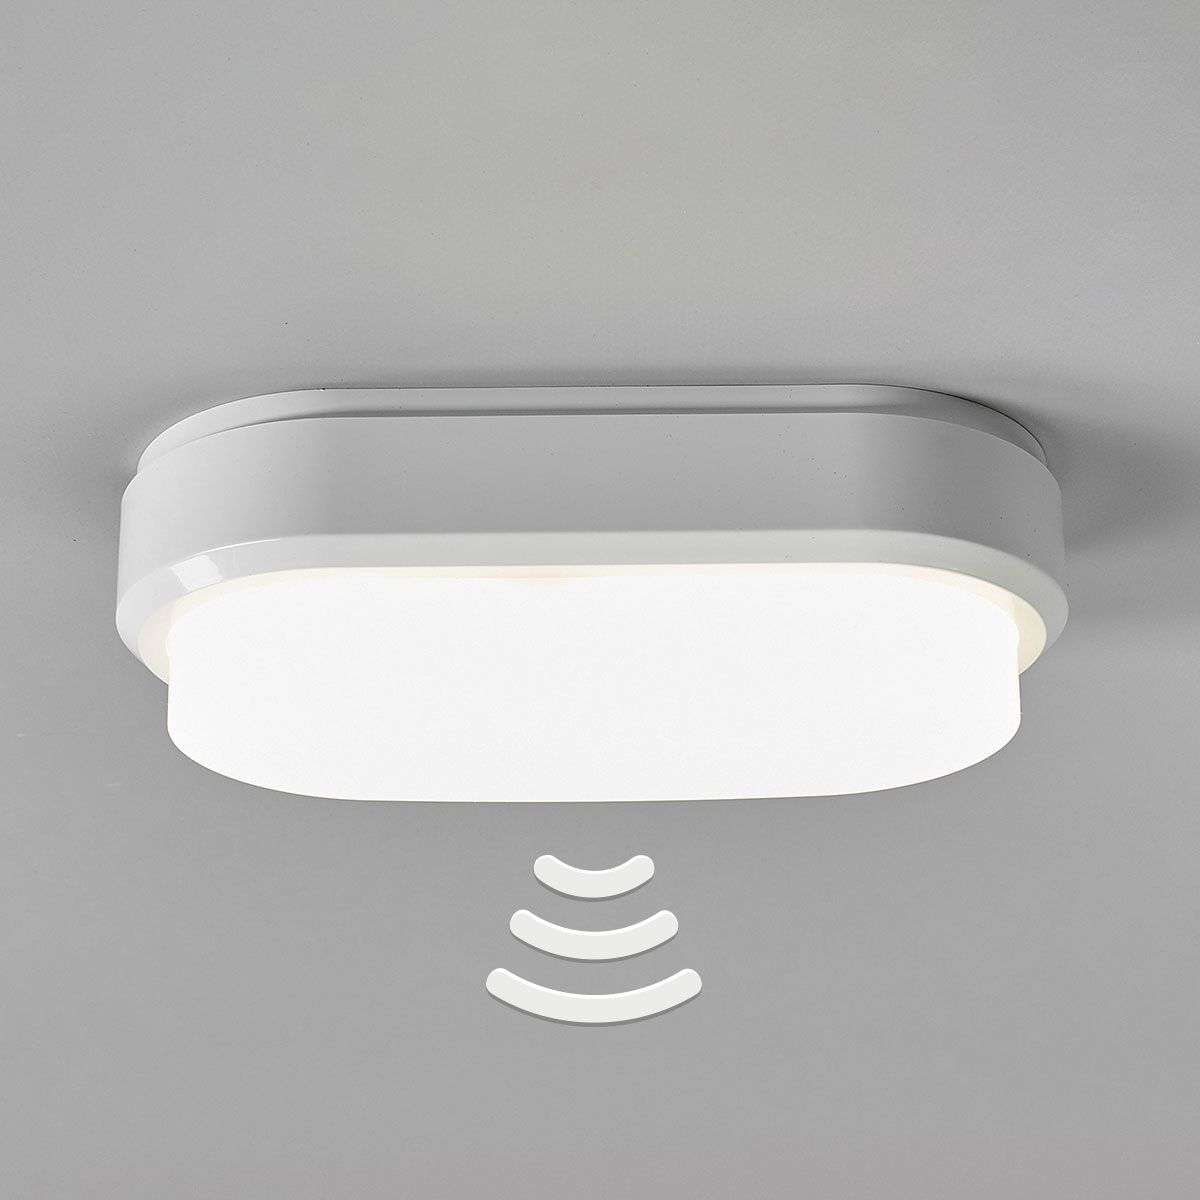 Bulkhead oval led ceiling lamp with sensor lights bulkhead oval led ceiling lamp with sensor 8559217 31 mozeypictures Image collections